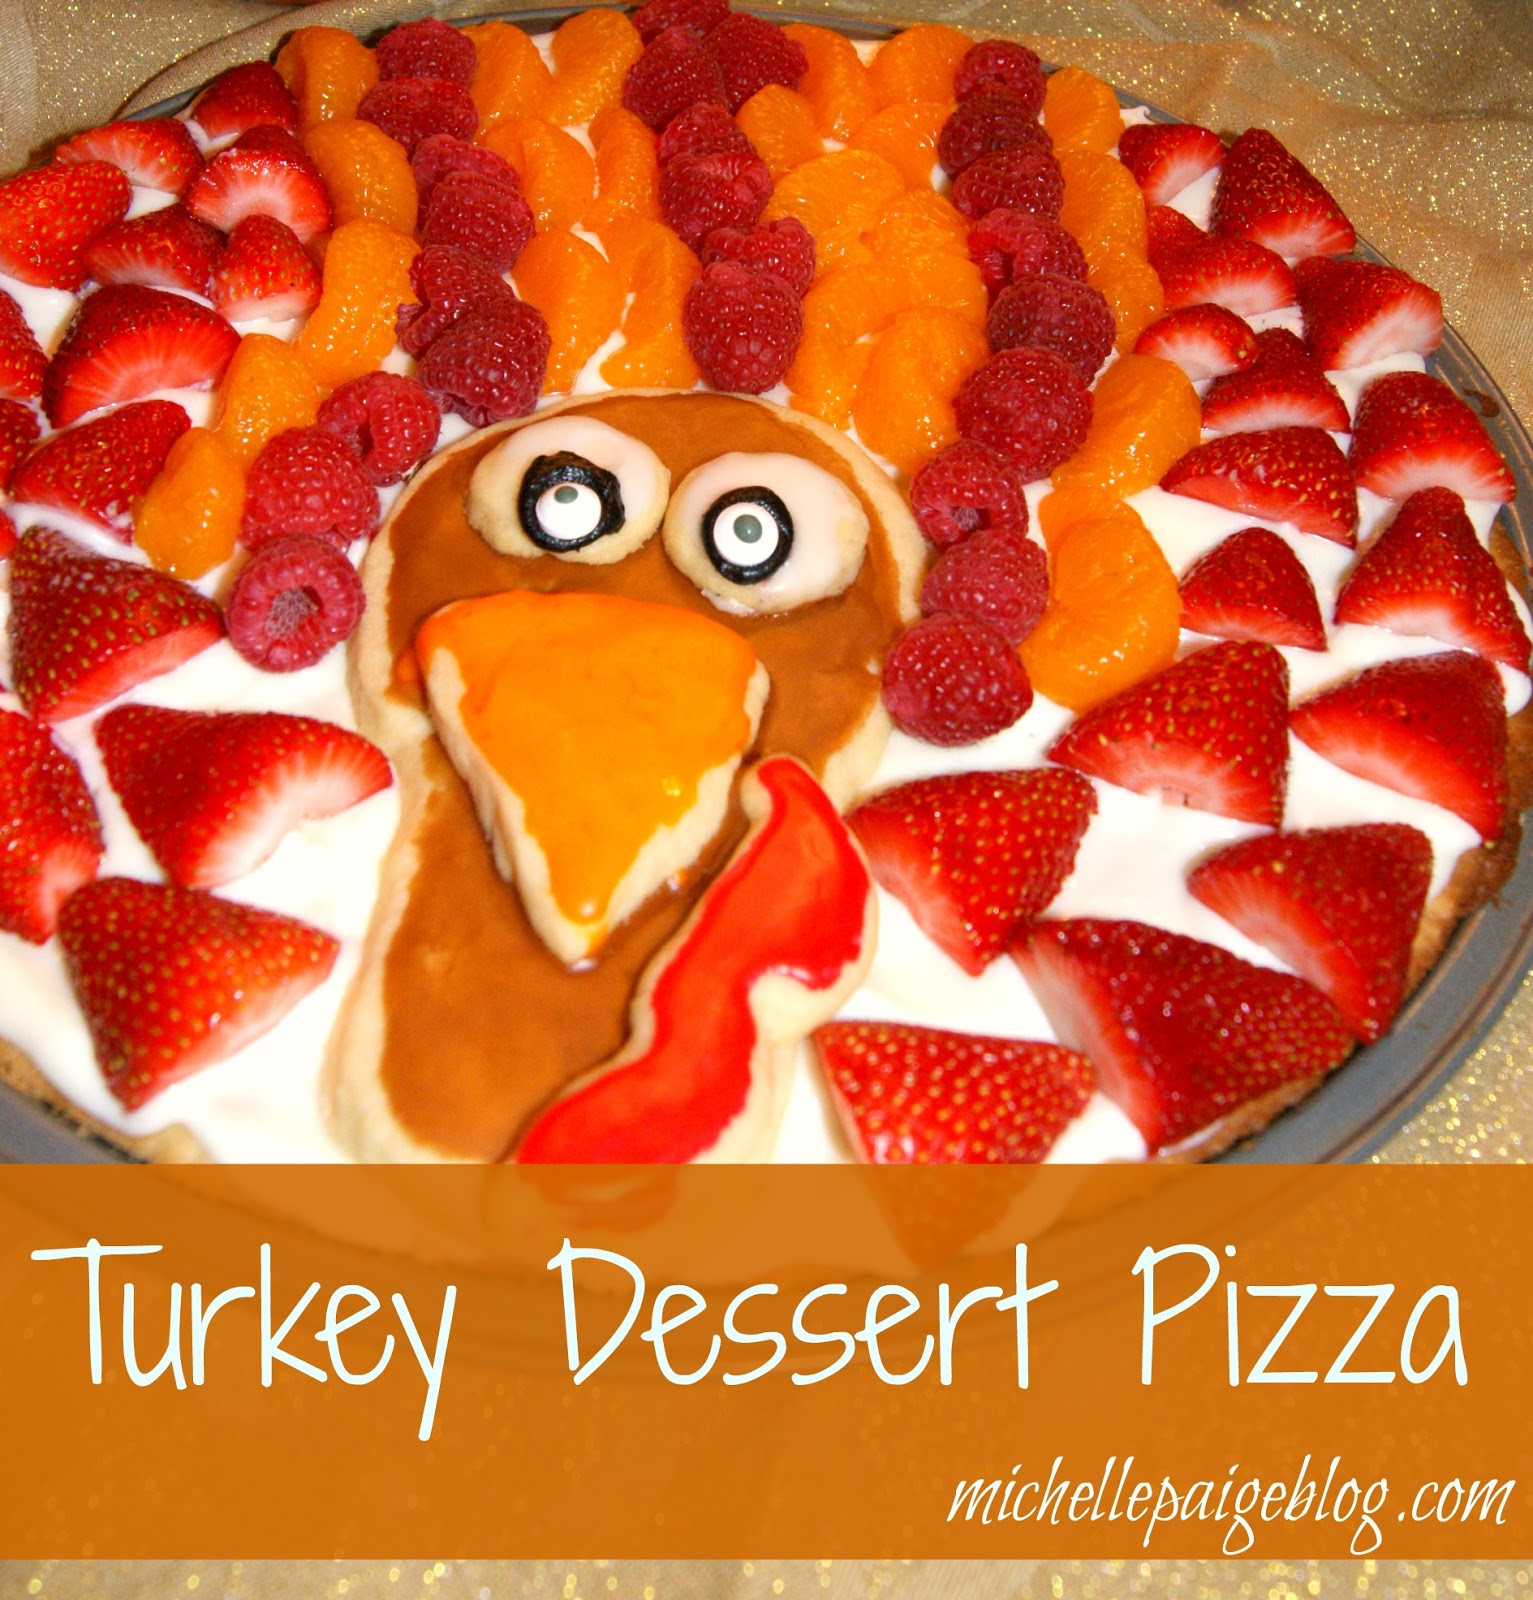 Thanksgiving Fruit Desserts  michelle paige blogs Sugar Cookie Turkey Dessert Pizza